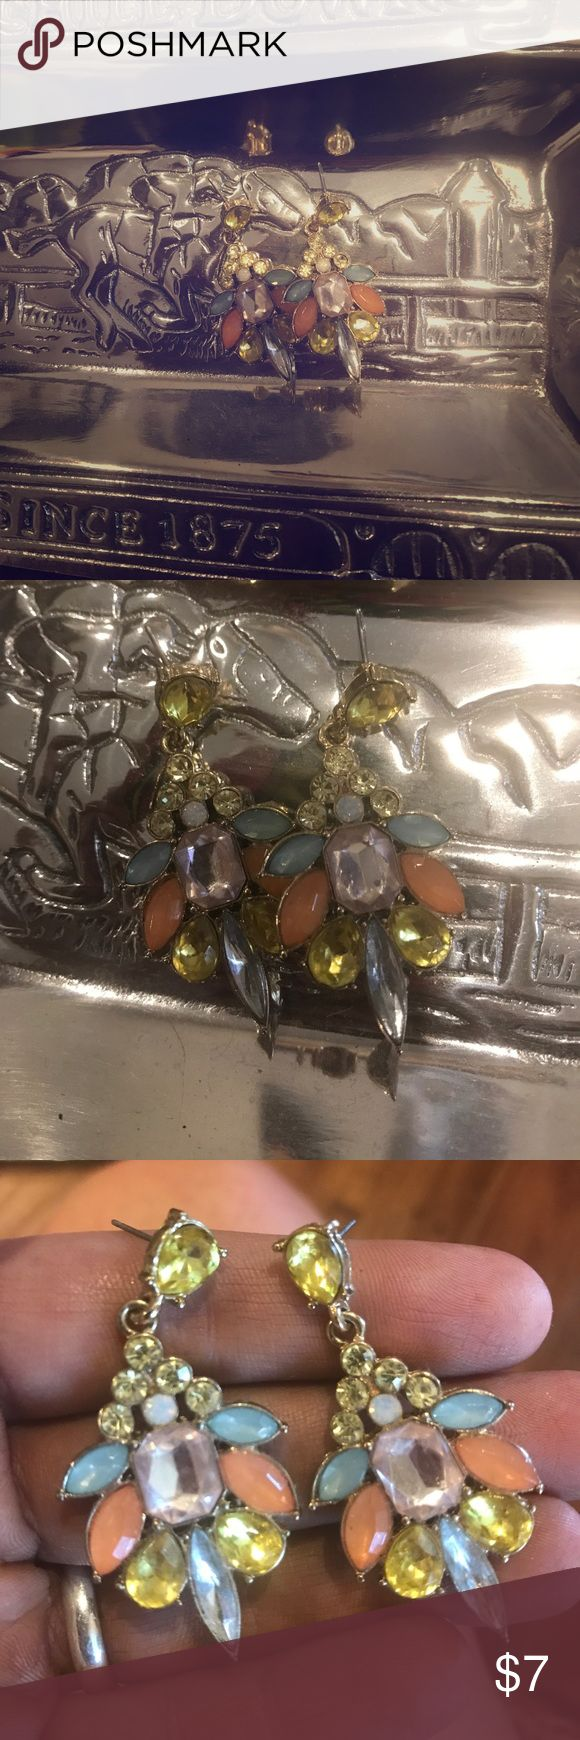 ✨💎Statement Earrings💎✨ Pretty earrings. Lavender, yellow, peach and sky blue colored stones. Gold details. EUC- an easy way to sees up any outfit! 🛒SHOP MY CLOSET🛍 Make me an offer🎉 or bundle to save💰 I love getting offers! 💸 I can't say yes if you don't ask 😉 Jewelry Earrings